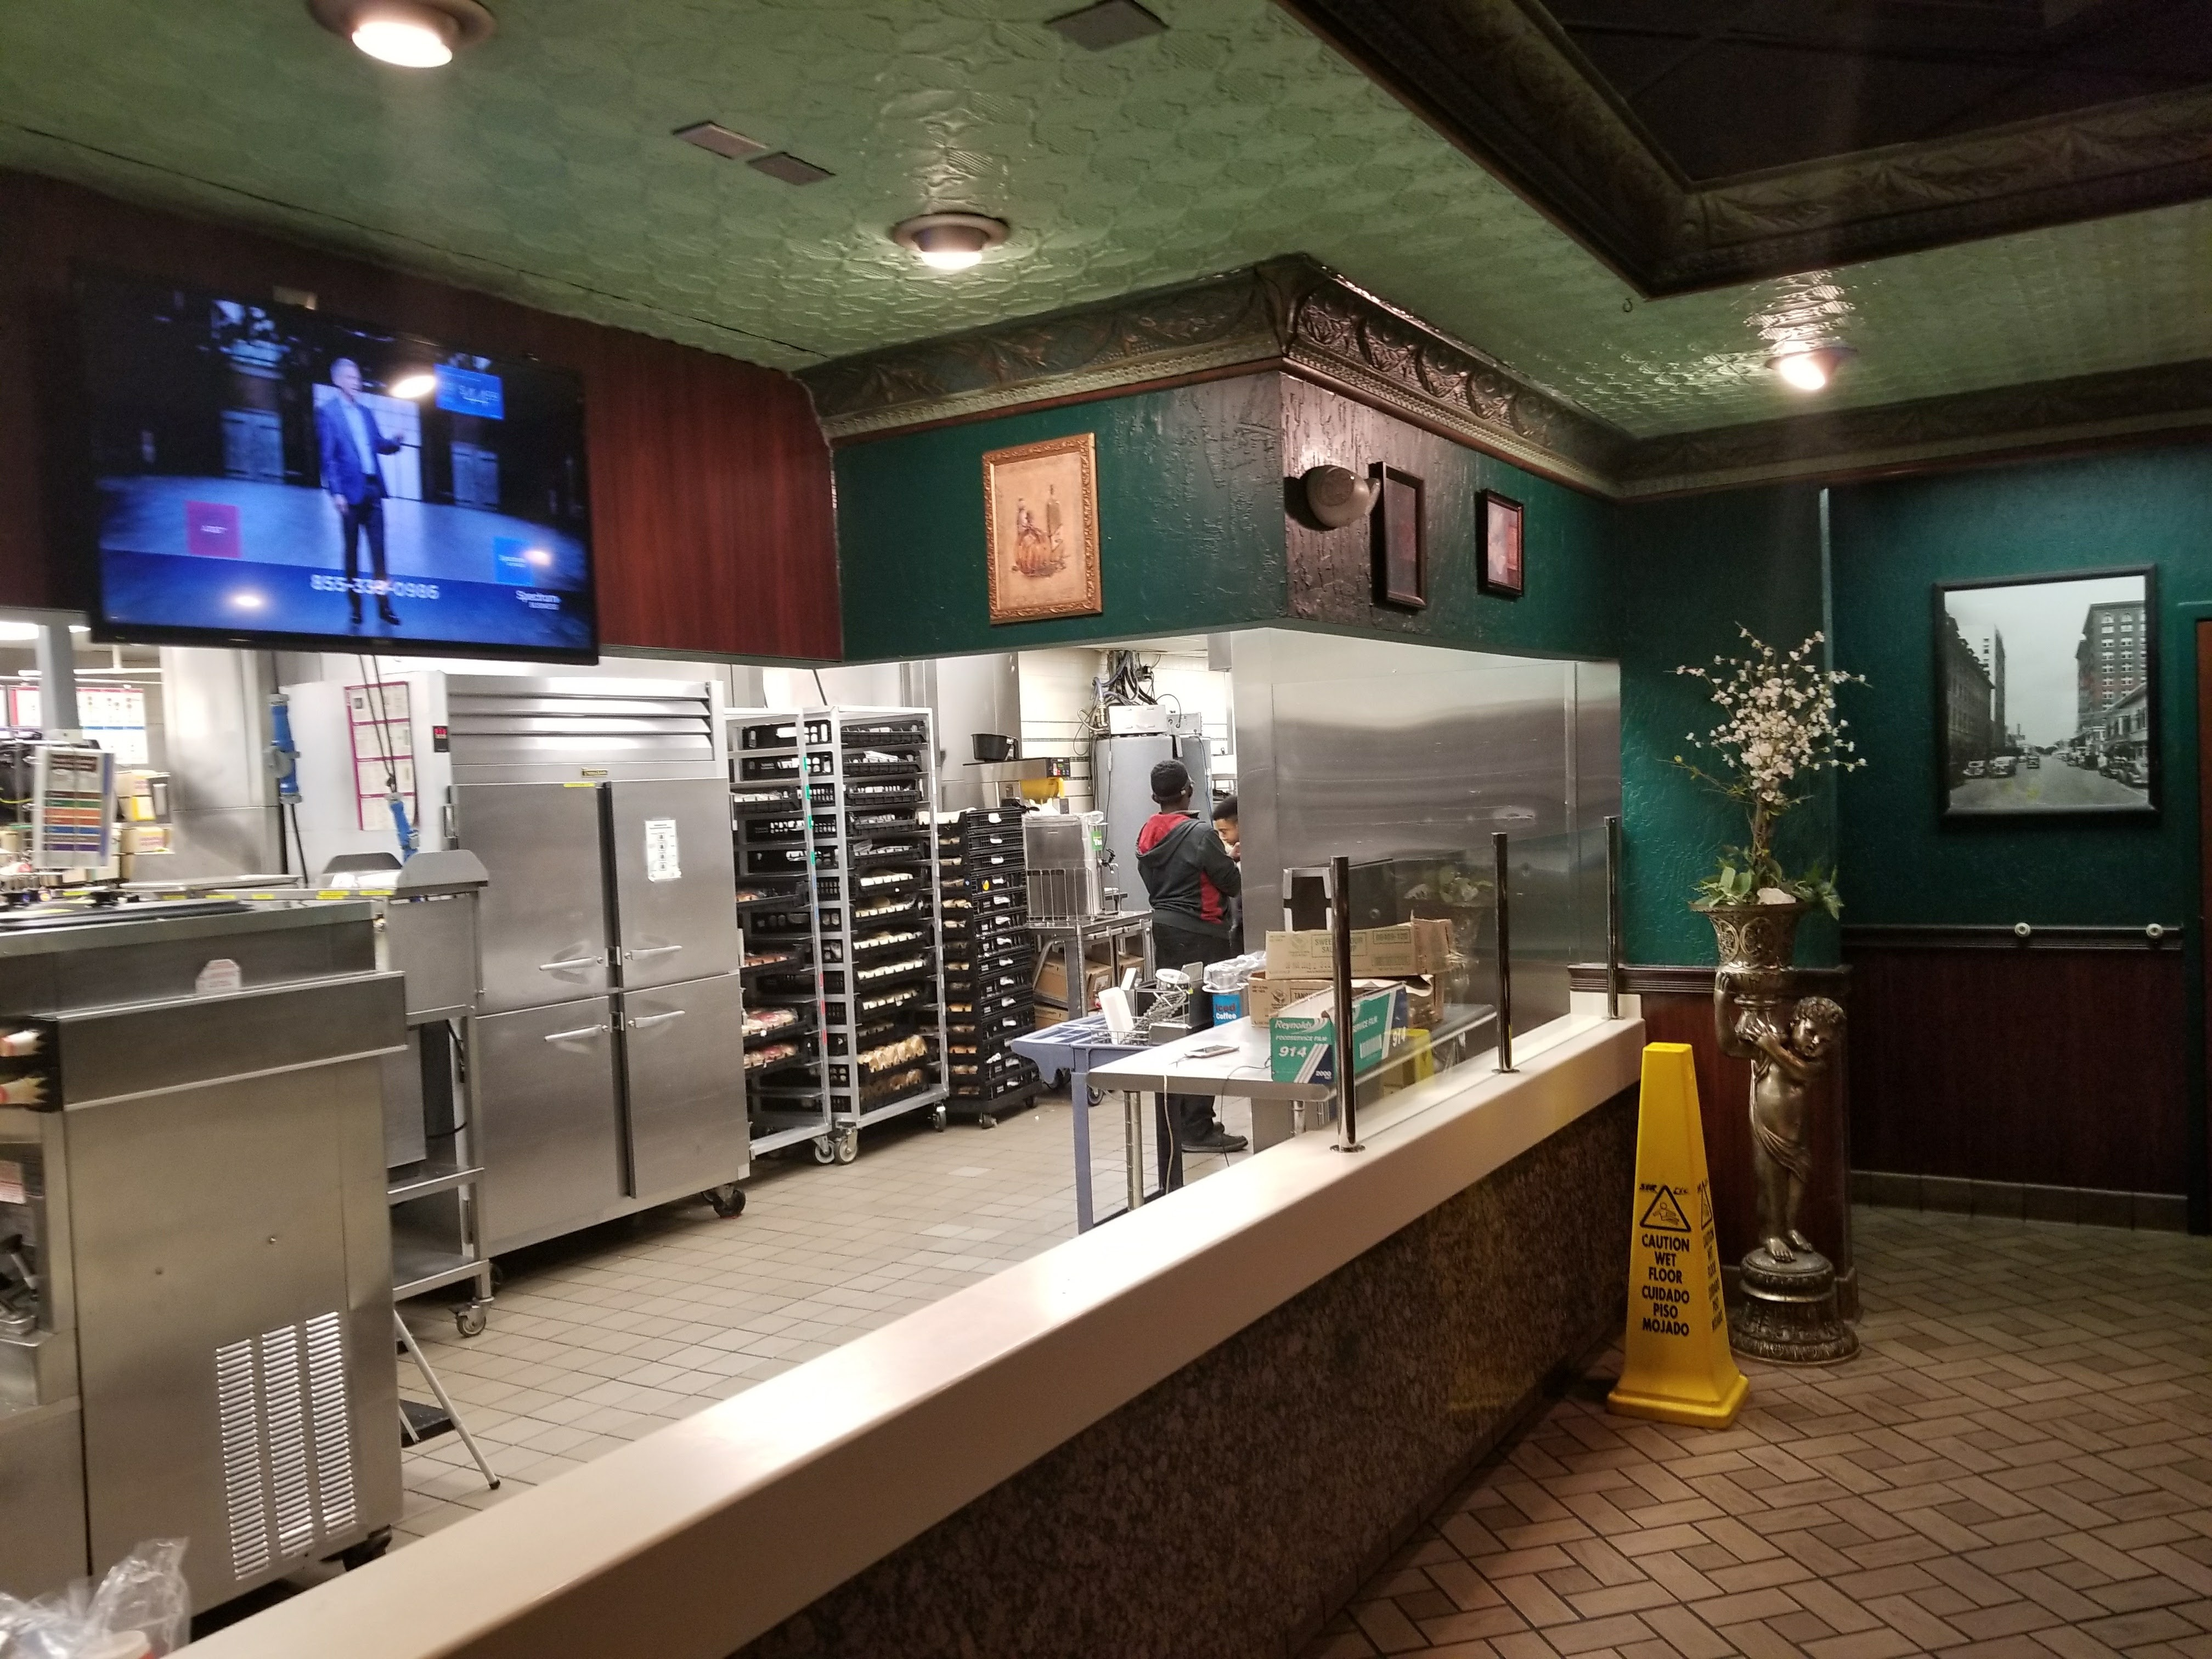 The Former Bistro Gourmet Counter Area At The SODO McDonaldu0027s